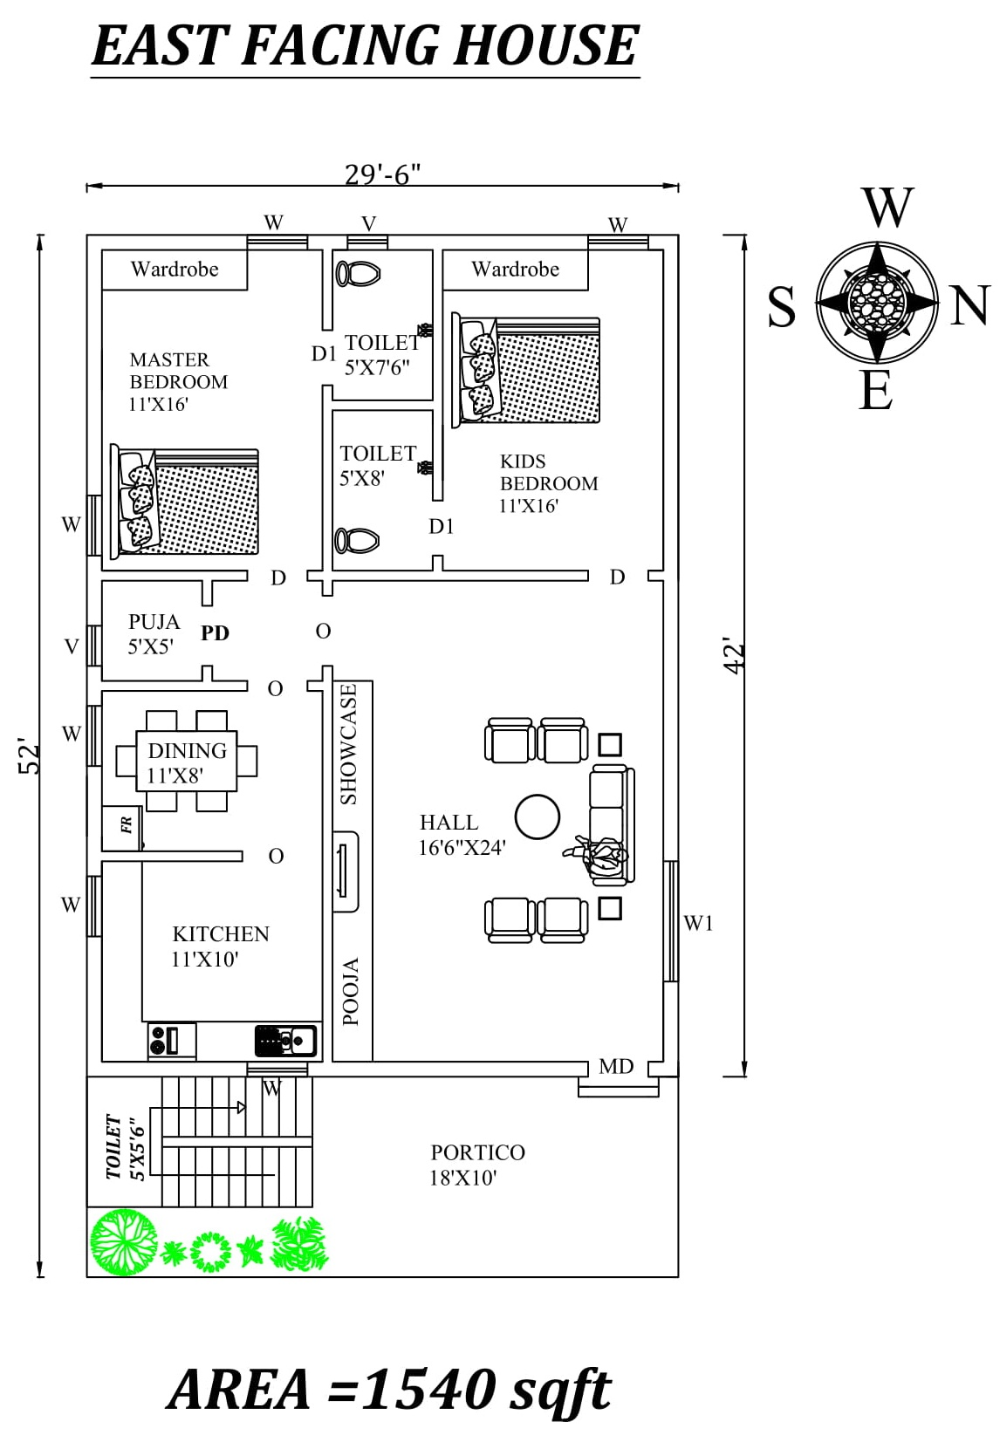 29 6 X52 The Perfect 2bhk East Facing House Plan As Per Vastu Shastra Autocad Dwg And Pdf File 2bhk House Plan House Plans Family House Plans